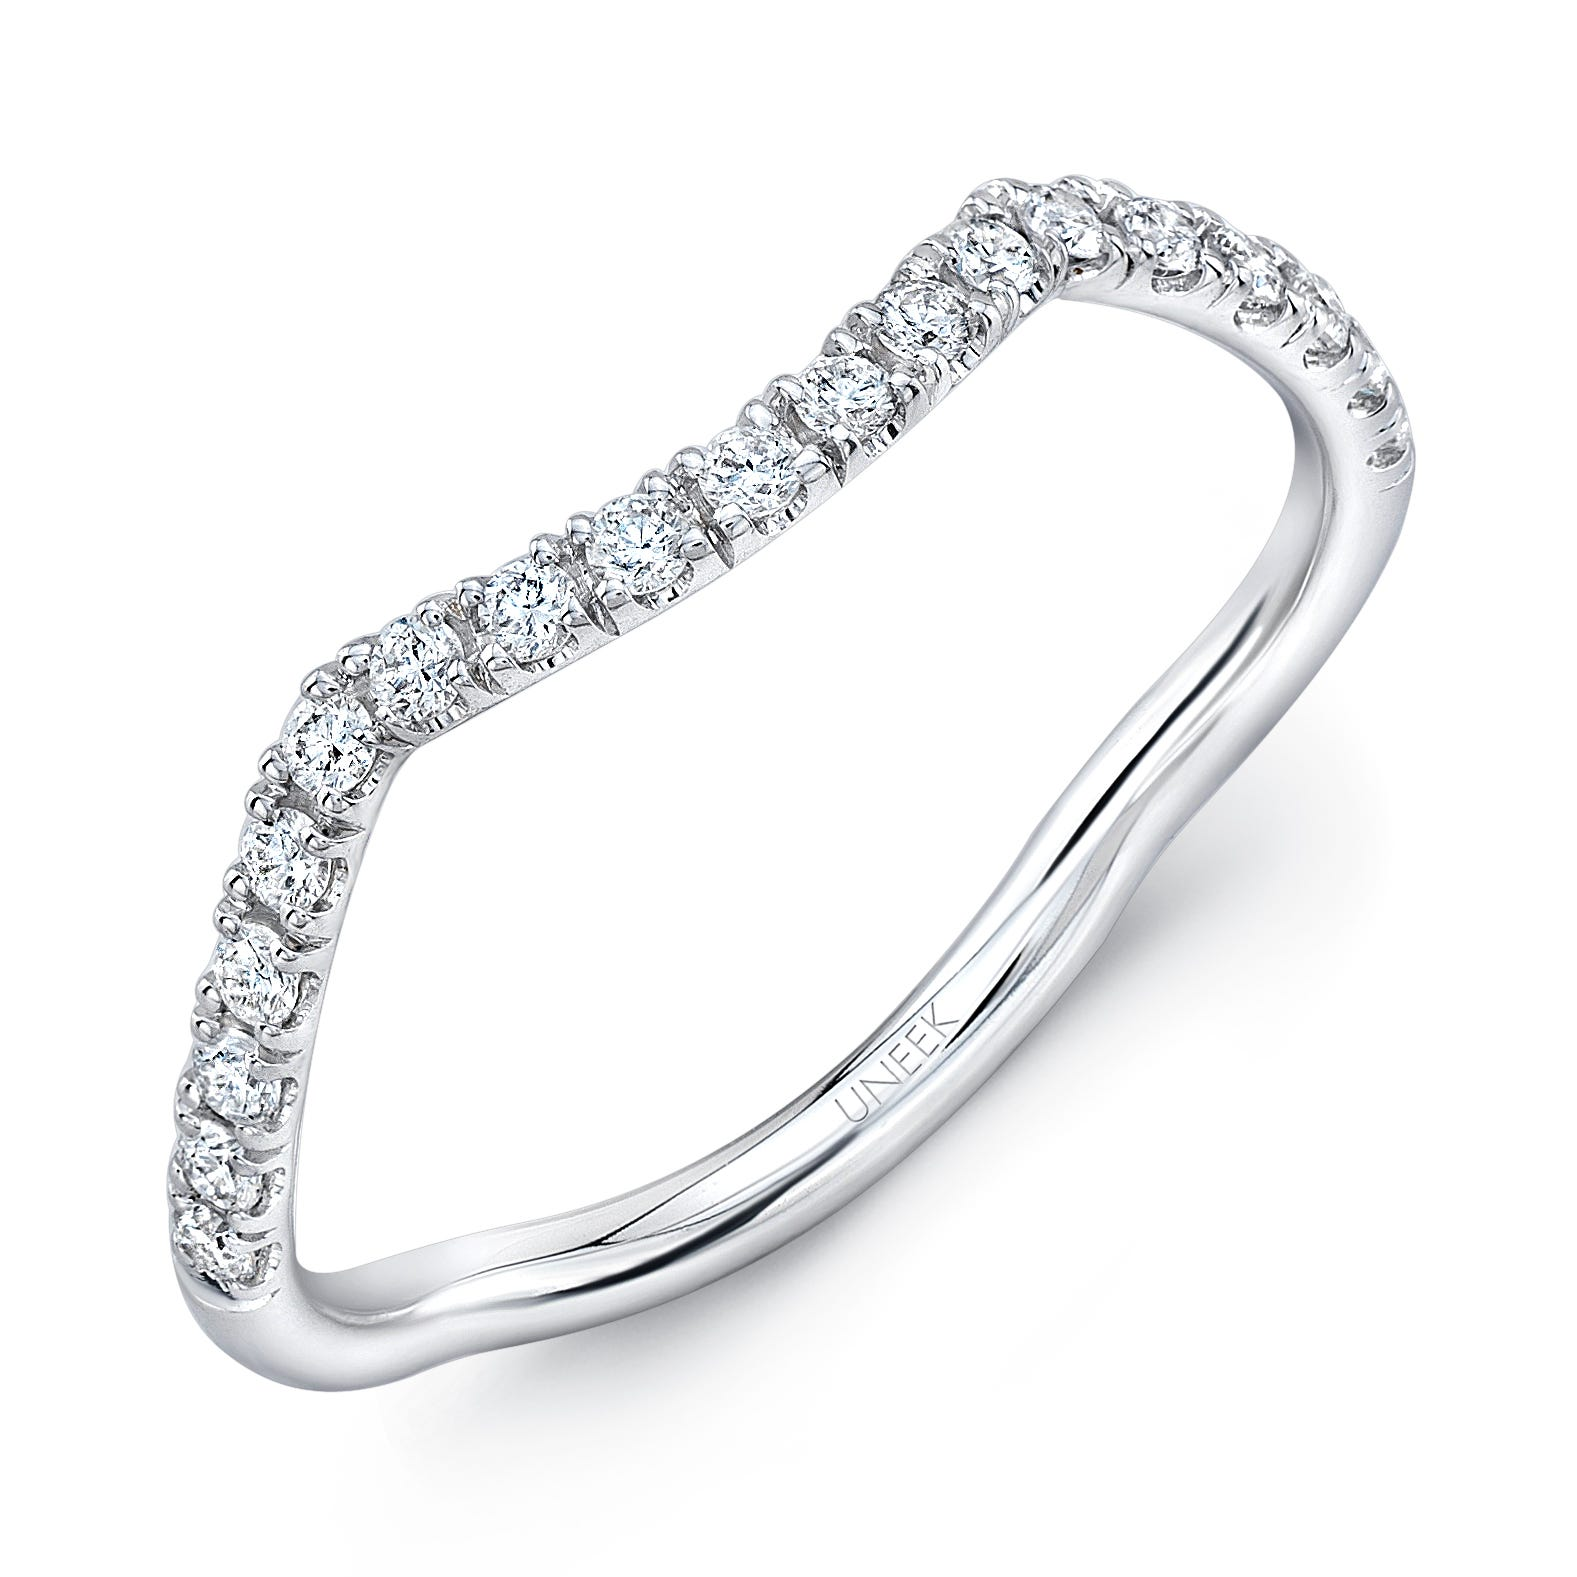 Uneek Infinity Pave Diamond Contoured Wedding Band in 14K White Gold